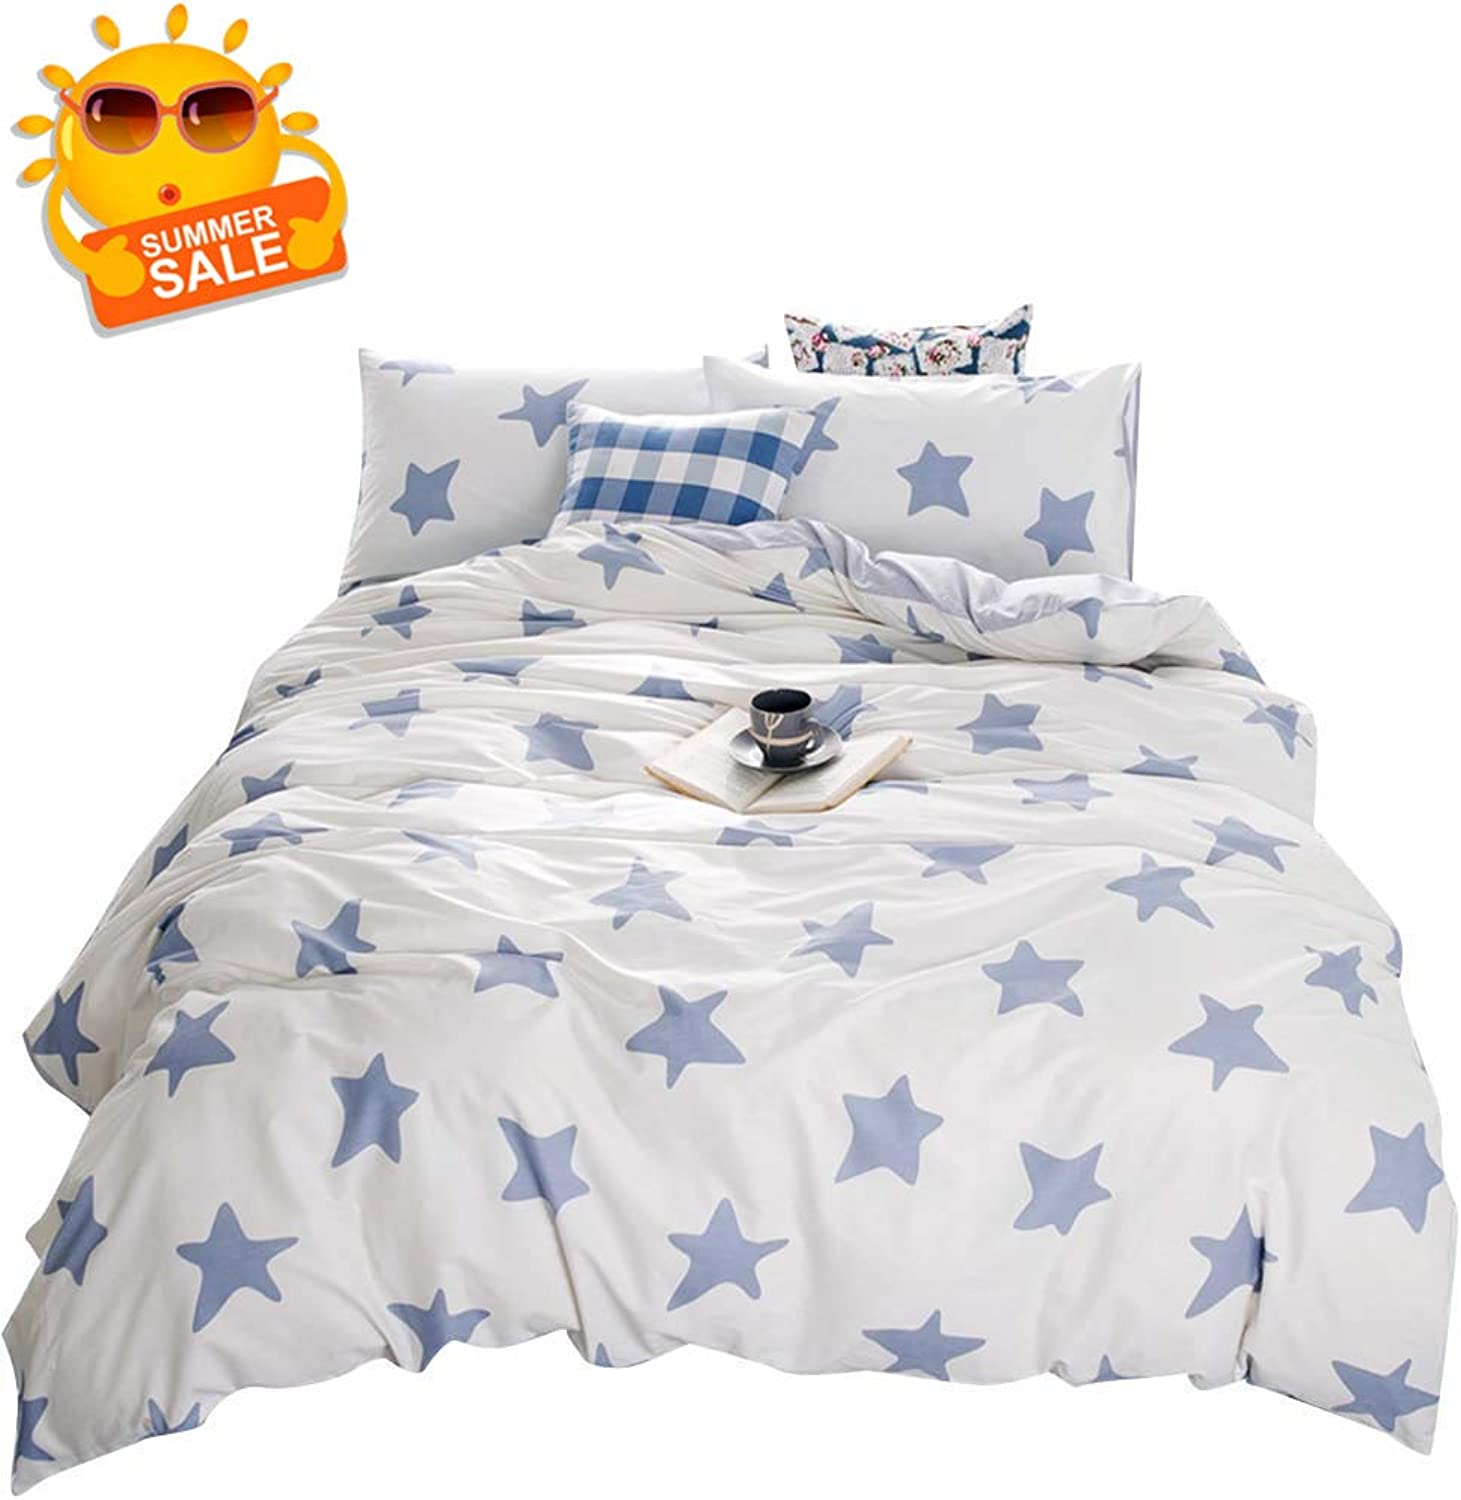 BuLuTu bluee Stars Queen Duvet Cover Cotton White,Soft 3 Pieces Duvet Cover Set for Kids Adults,Cute Decorative Bedding Sets Full Size,Zipper Closure,No Comforter